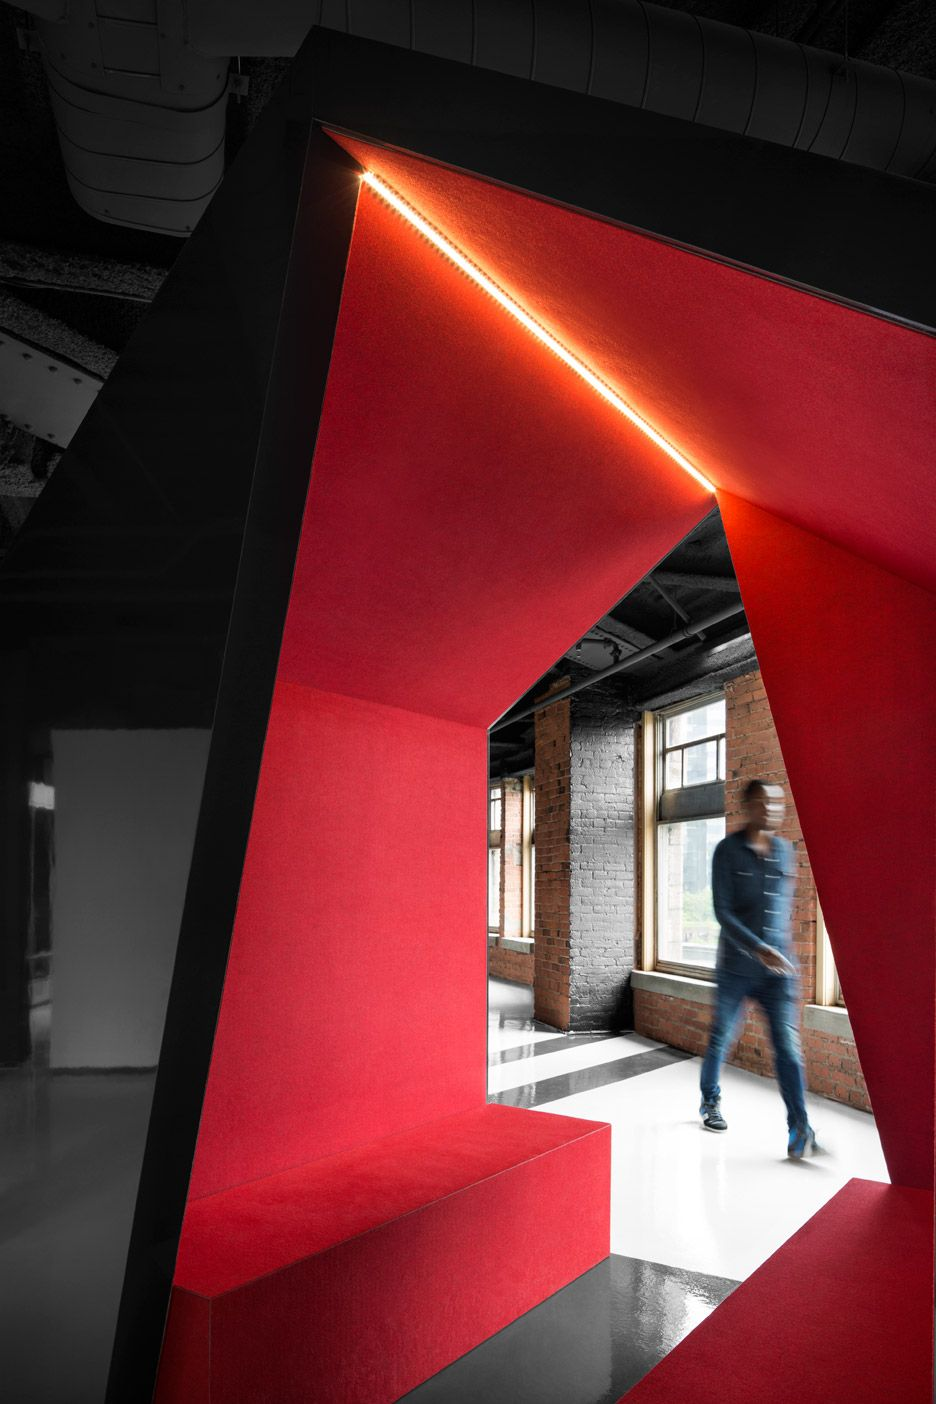 Acdf architecture has repurposed a space inside an for Acdf architecture